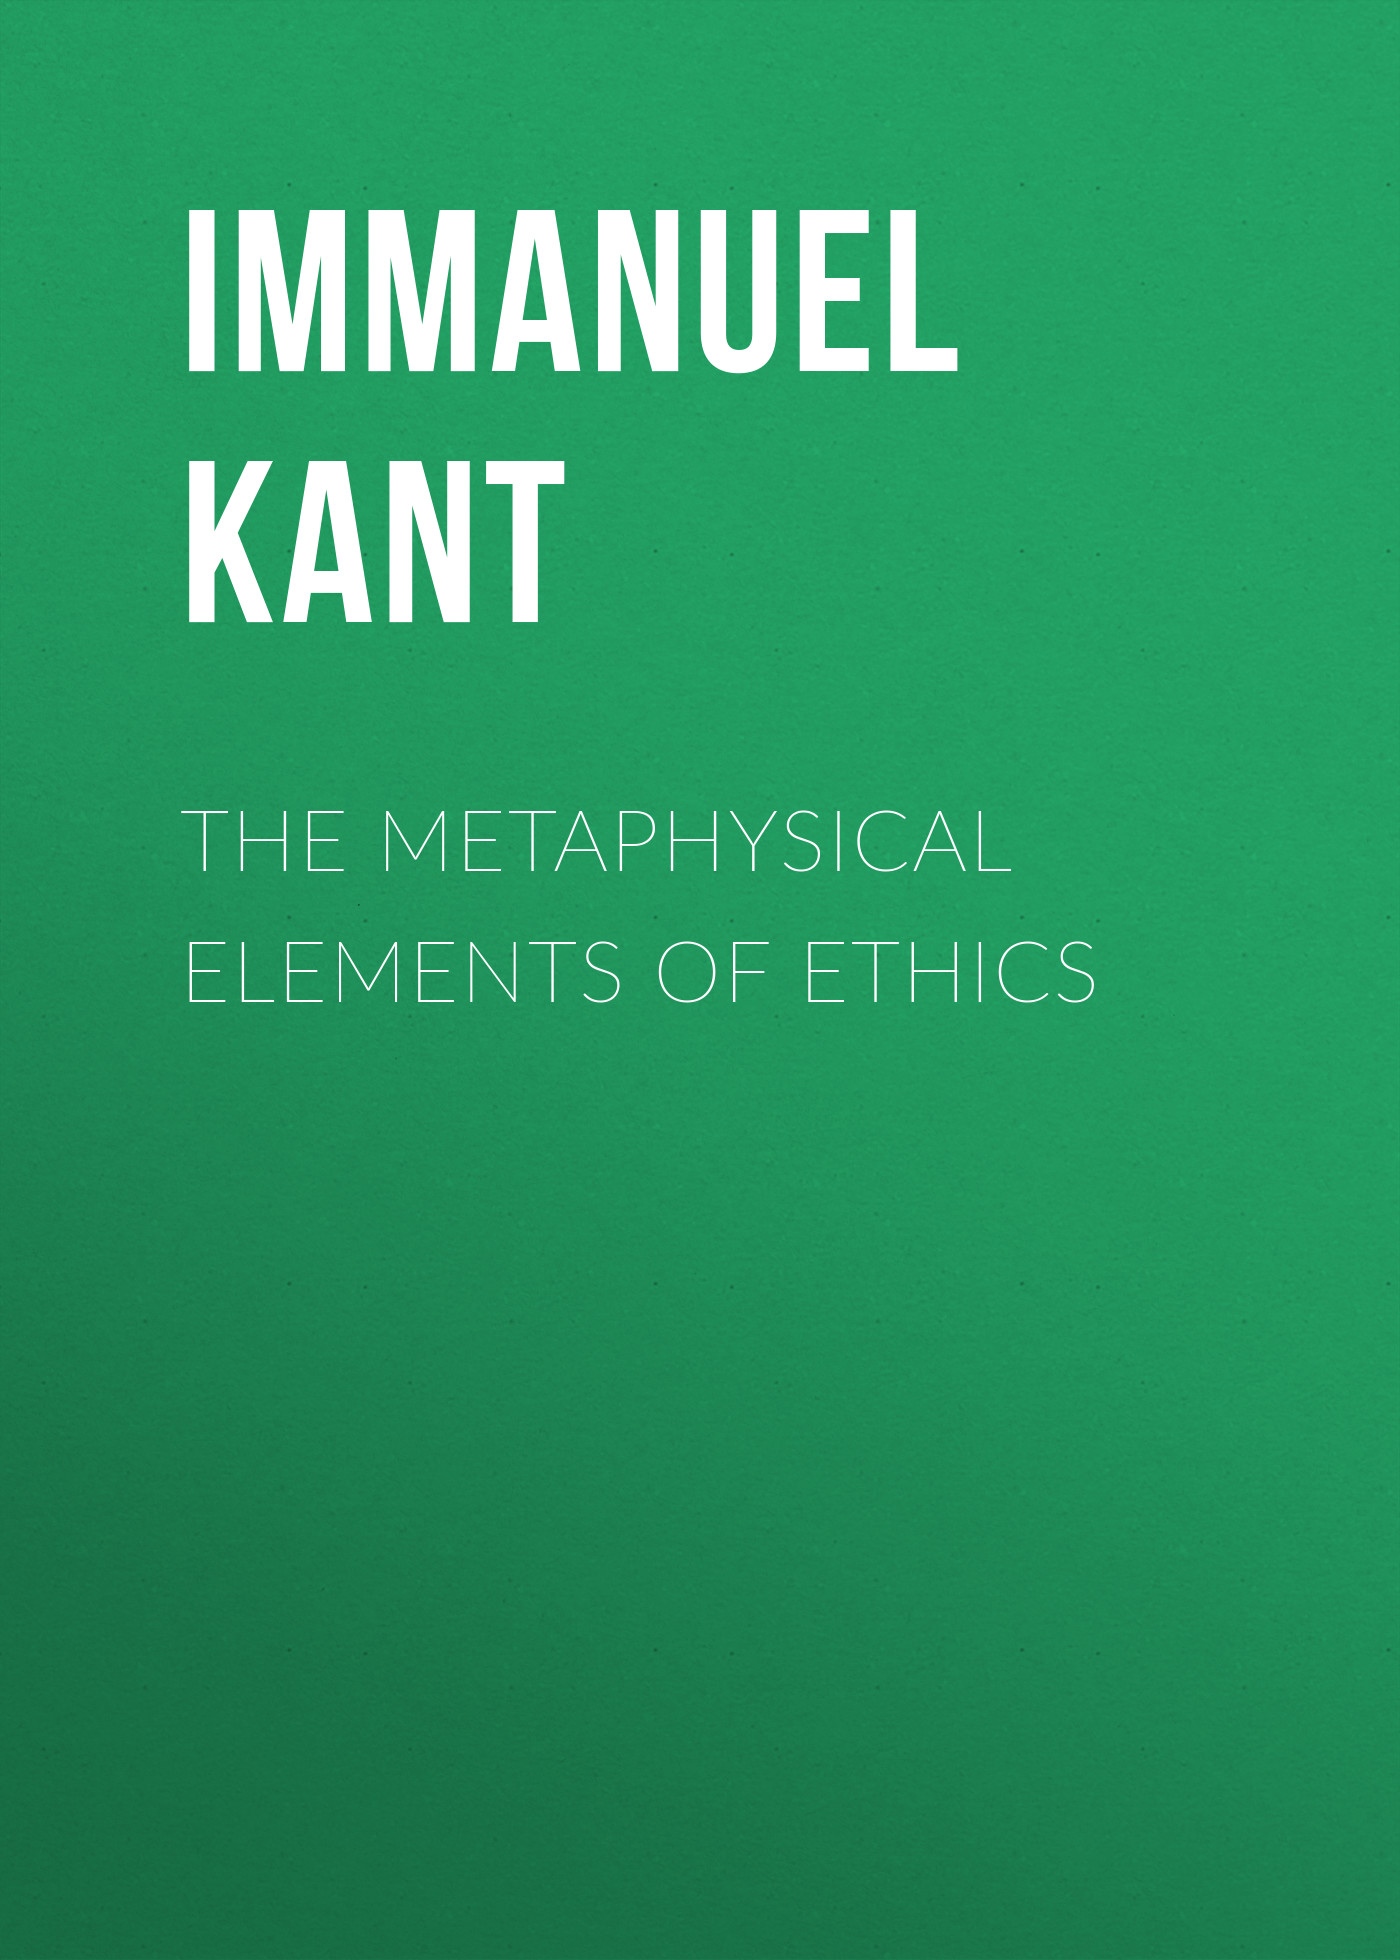 Immanuel Kant The Metaphysical Elements of Ethics комбинированная плита simfer f66go32017